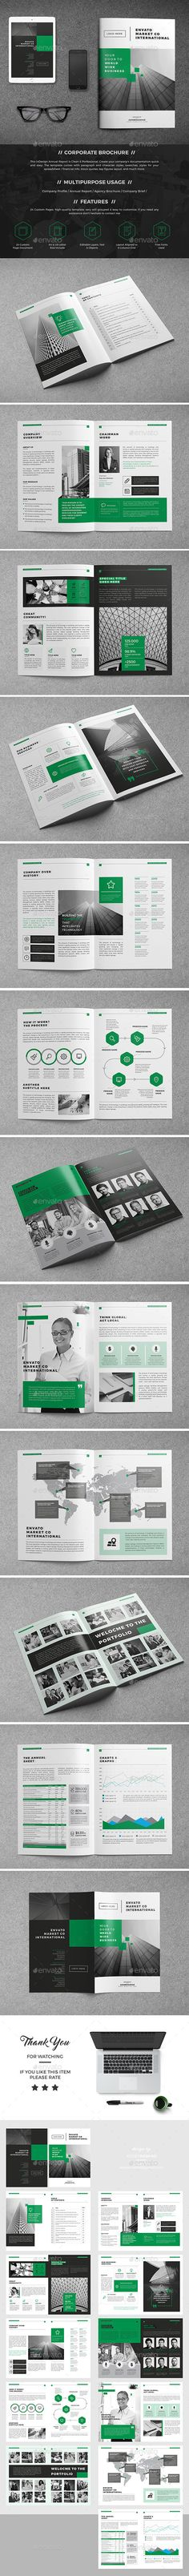 Company Brochure 24 Page • Available here → http://graphicriver.net/item/company-brochure-24-page/15412942?ref=pxcr